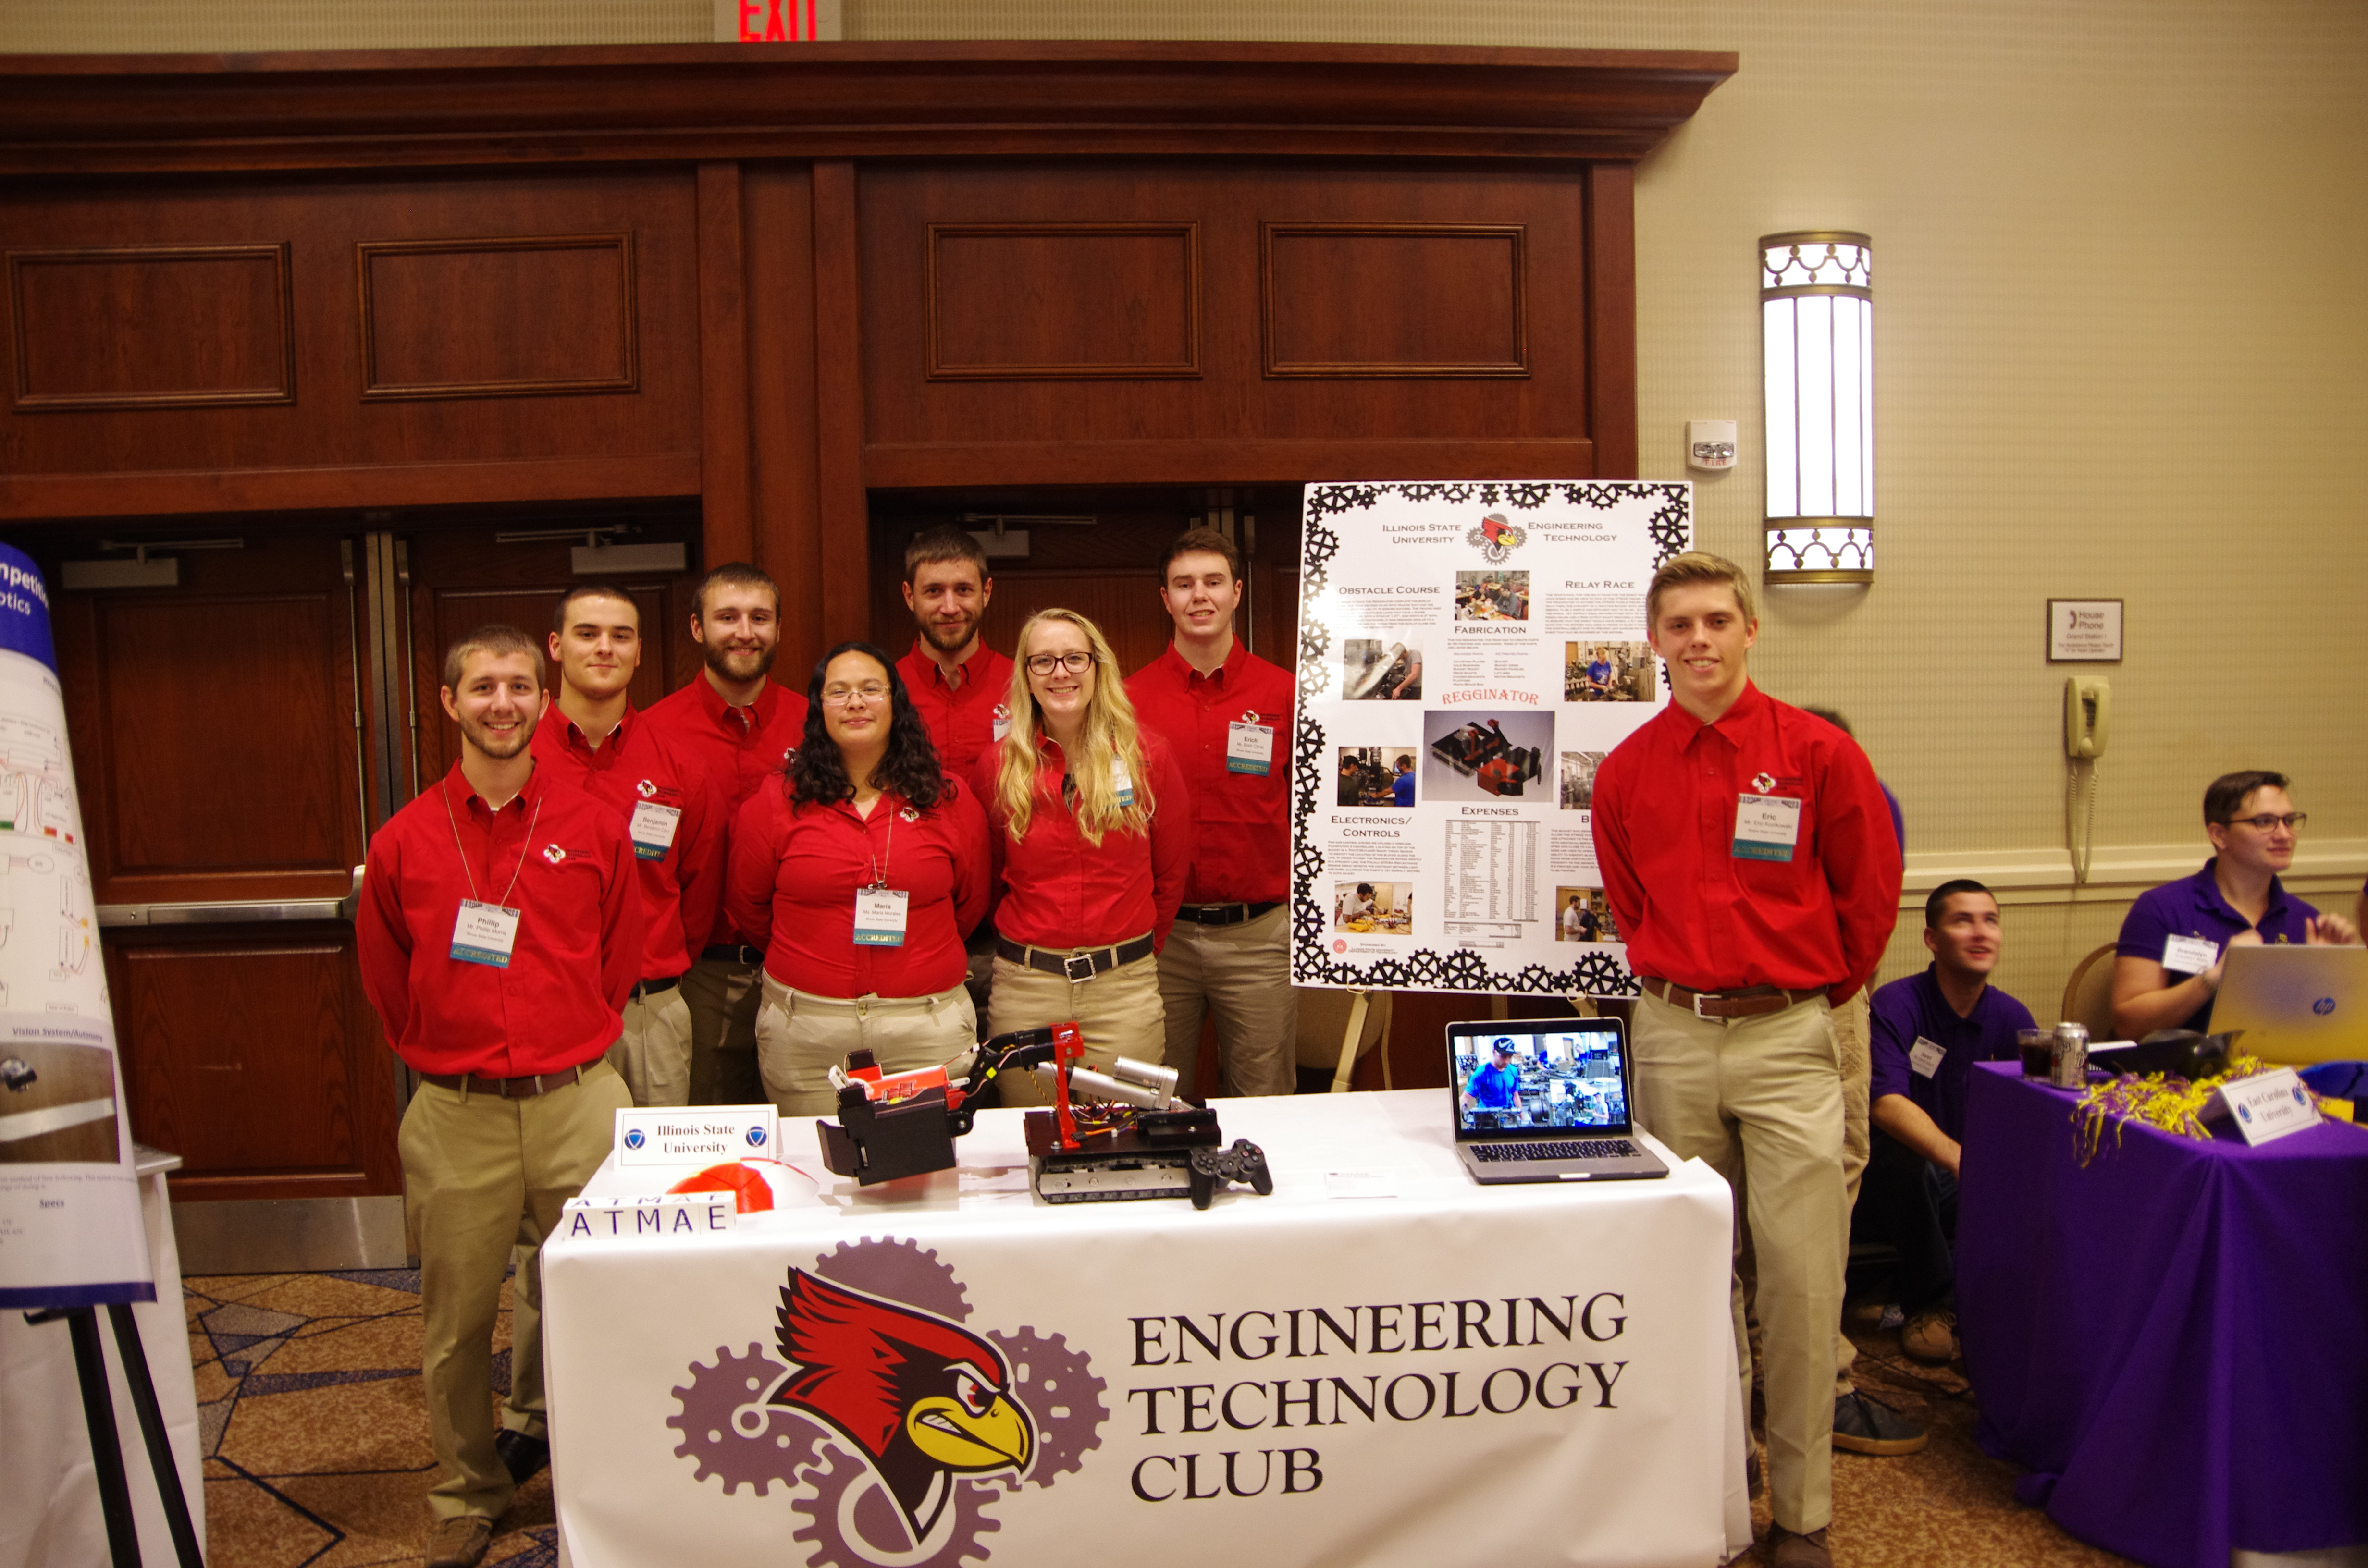 ET Club at the 2015 Association of Technology, Management & Applied Engineering (ATMAE) robotics competition.